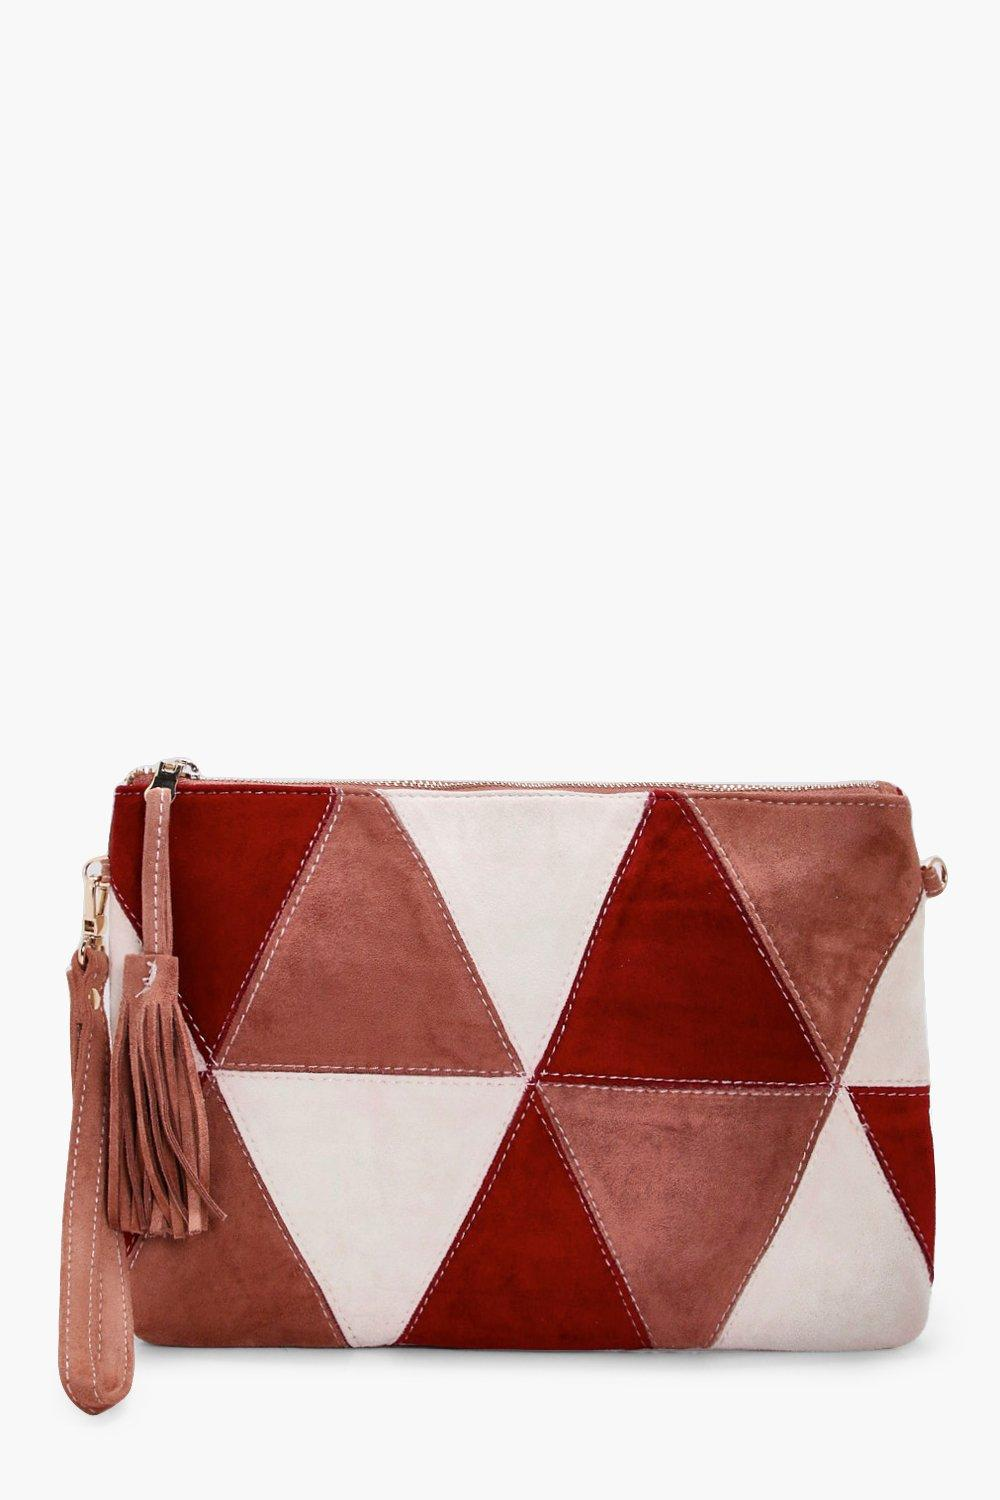 Suedette Patchwork Cross Body - red - Poppy Suedet